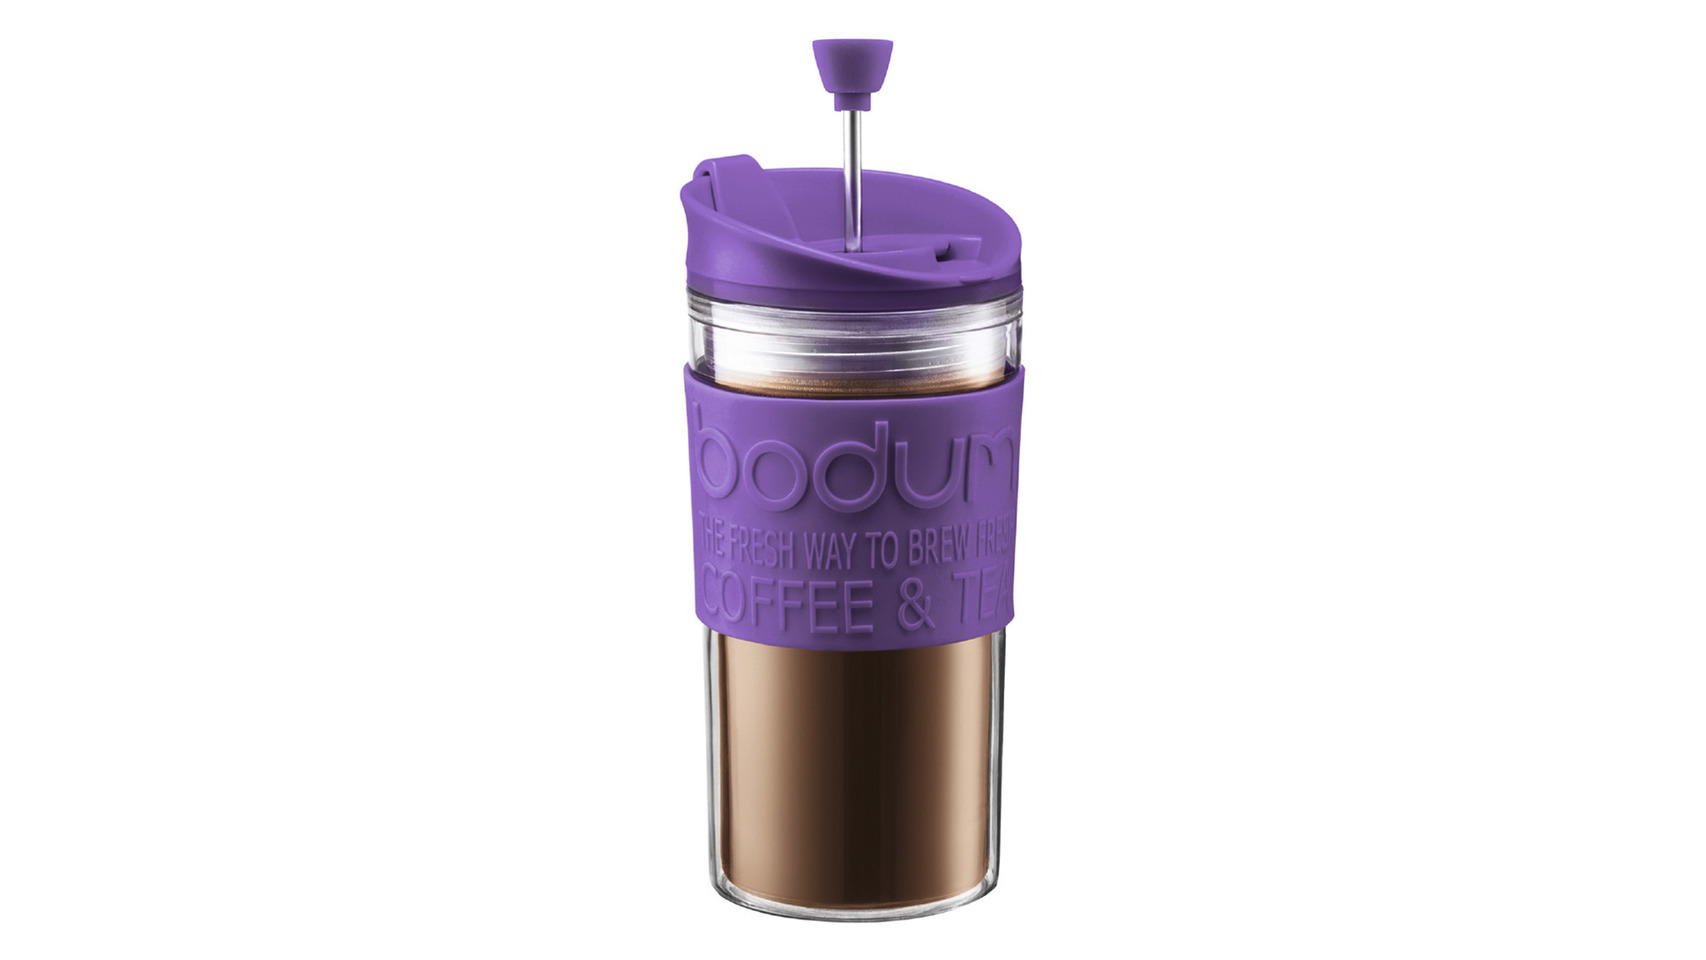 Mug Bodum formato Travel Press Set. De venta en El Corte Inglés.